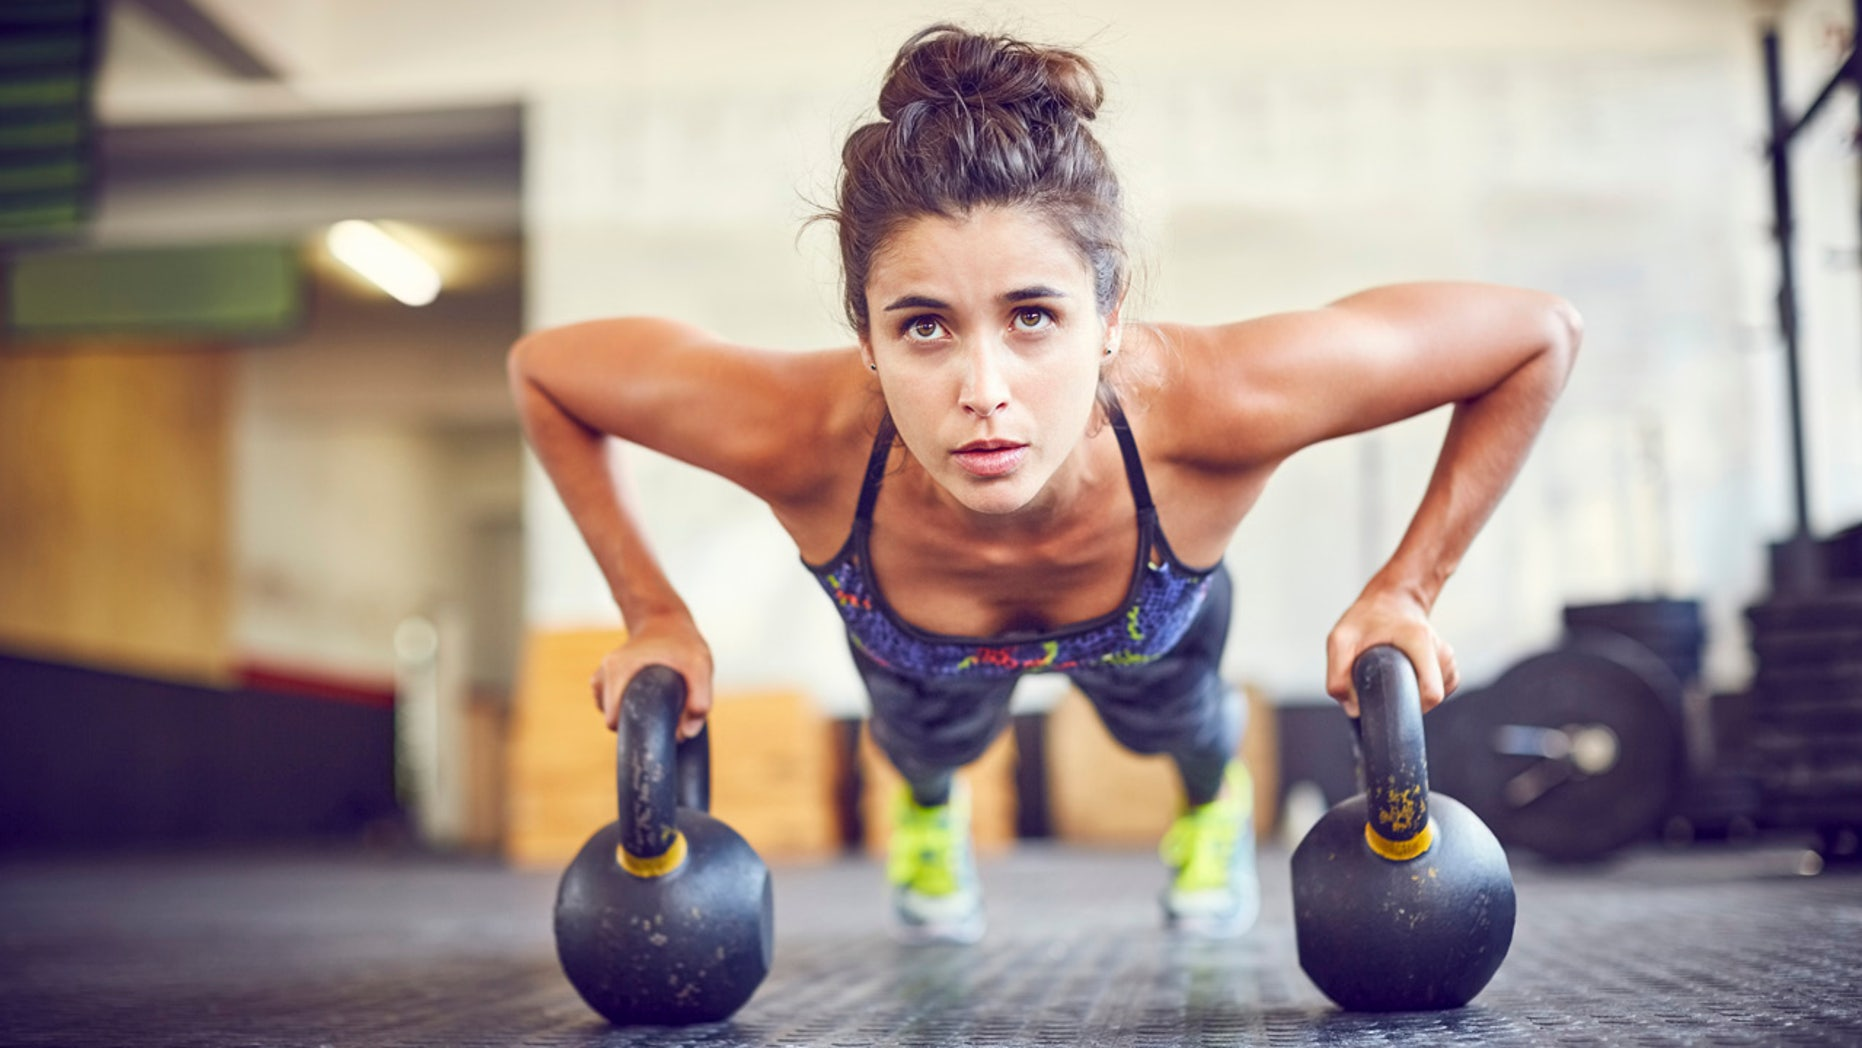 Focused athlete doing push-ups on kettlebells. Female is exercising in gym. Sporty woman is in health club.